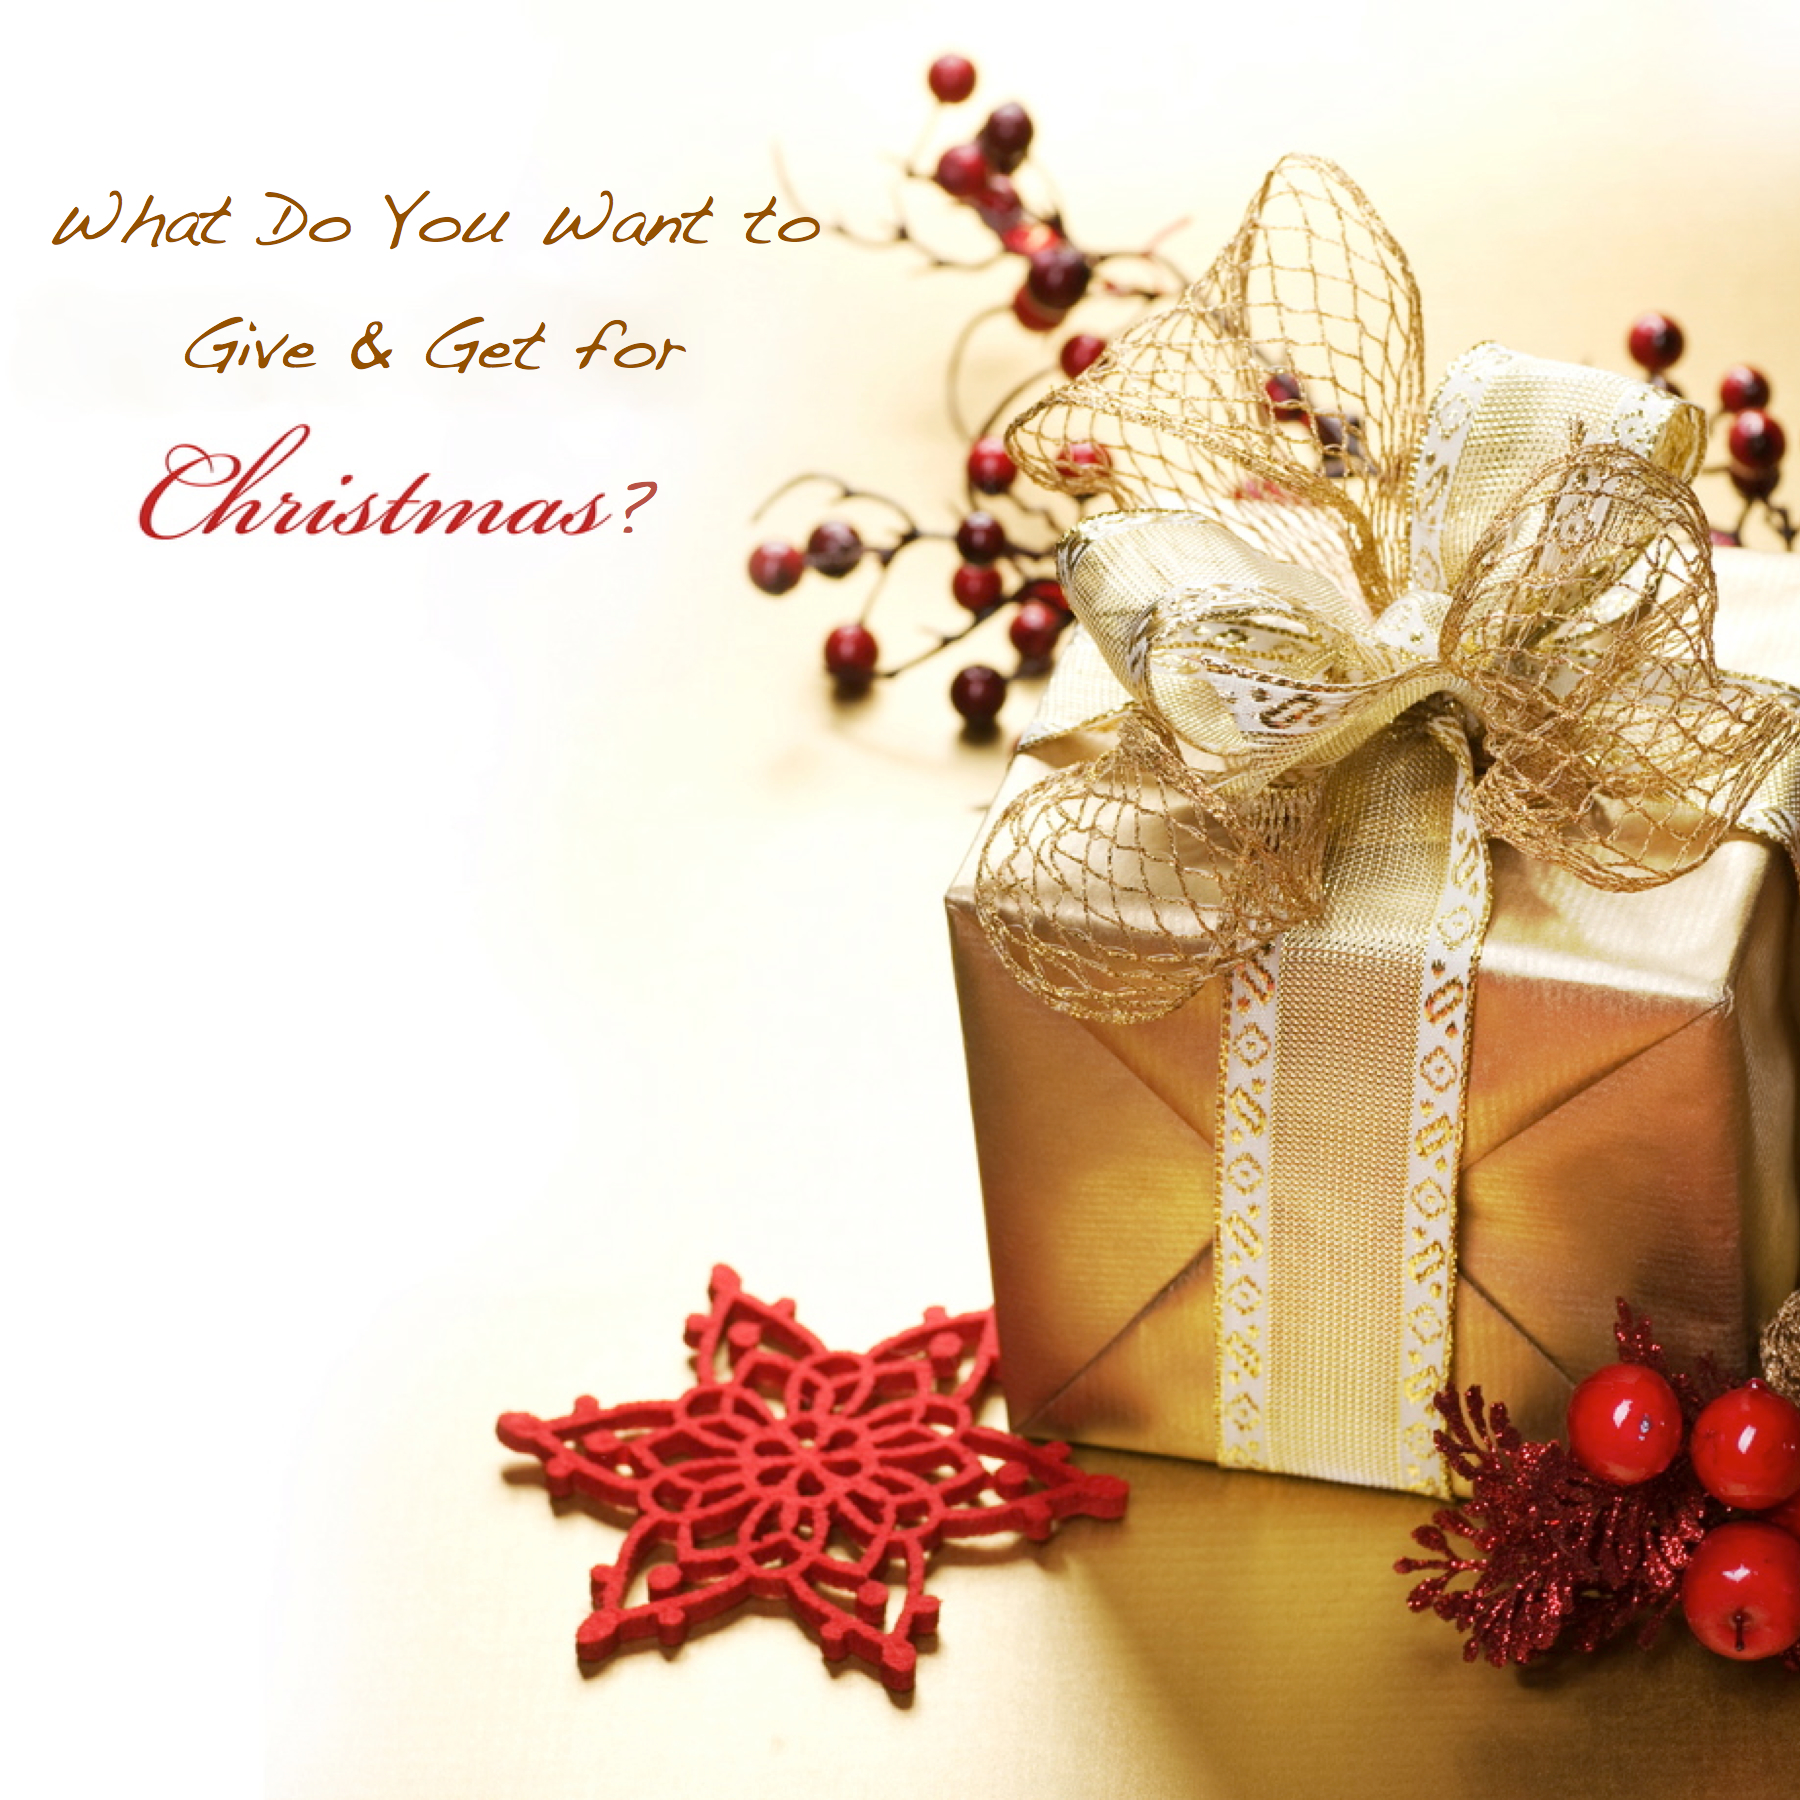 Quotes About Christmas Gifts: Quotes About Christmas Gift Giving (39 Quotes